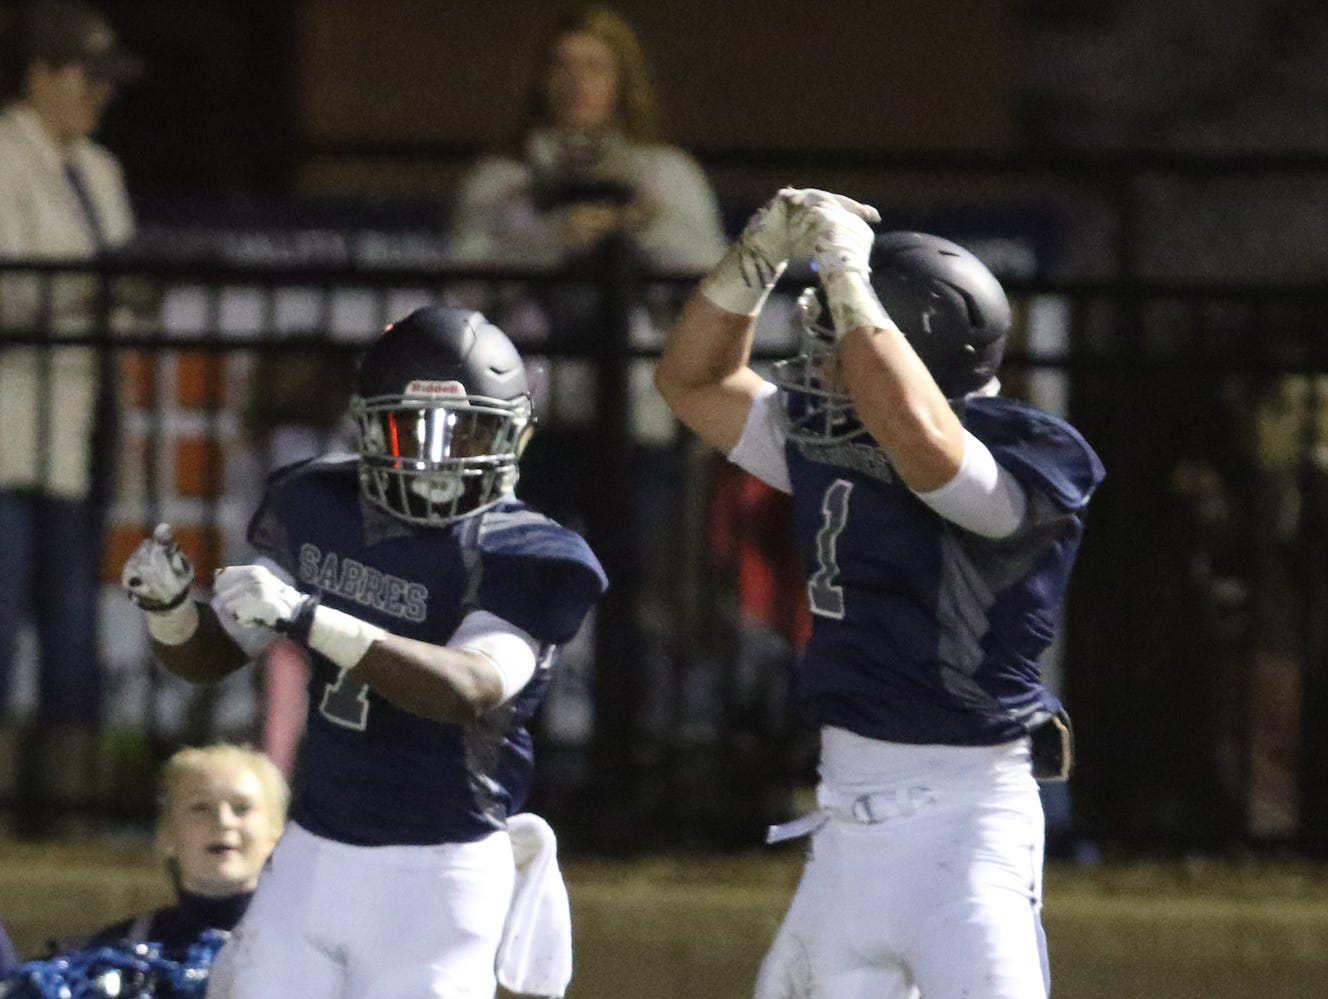 Southside Christian School's Quintyn Reeder(7) and Southside Christian School's Josh Tolbert(1) celebrate a touchdown. Southside Christian School hosted Williston-Elko High for the second round of the 1-A Playoffs.